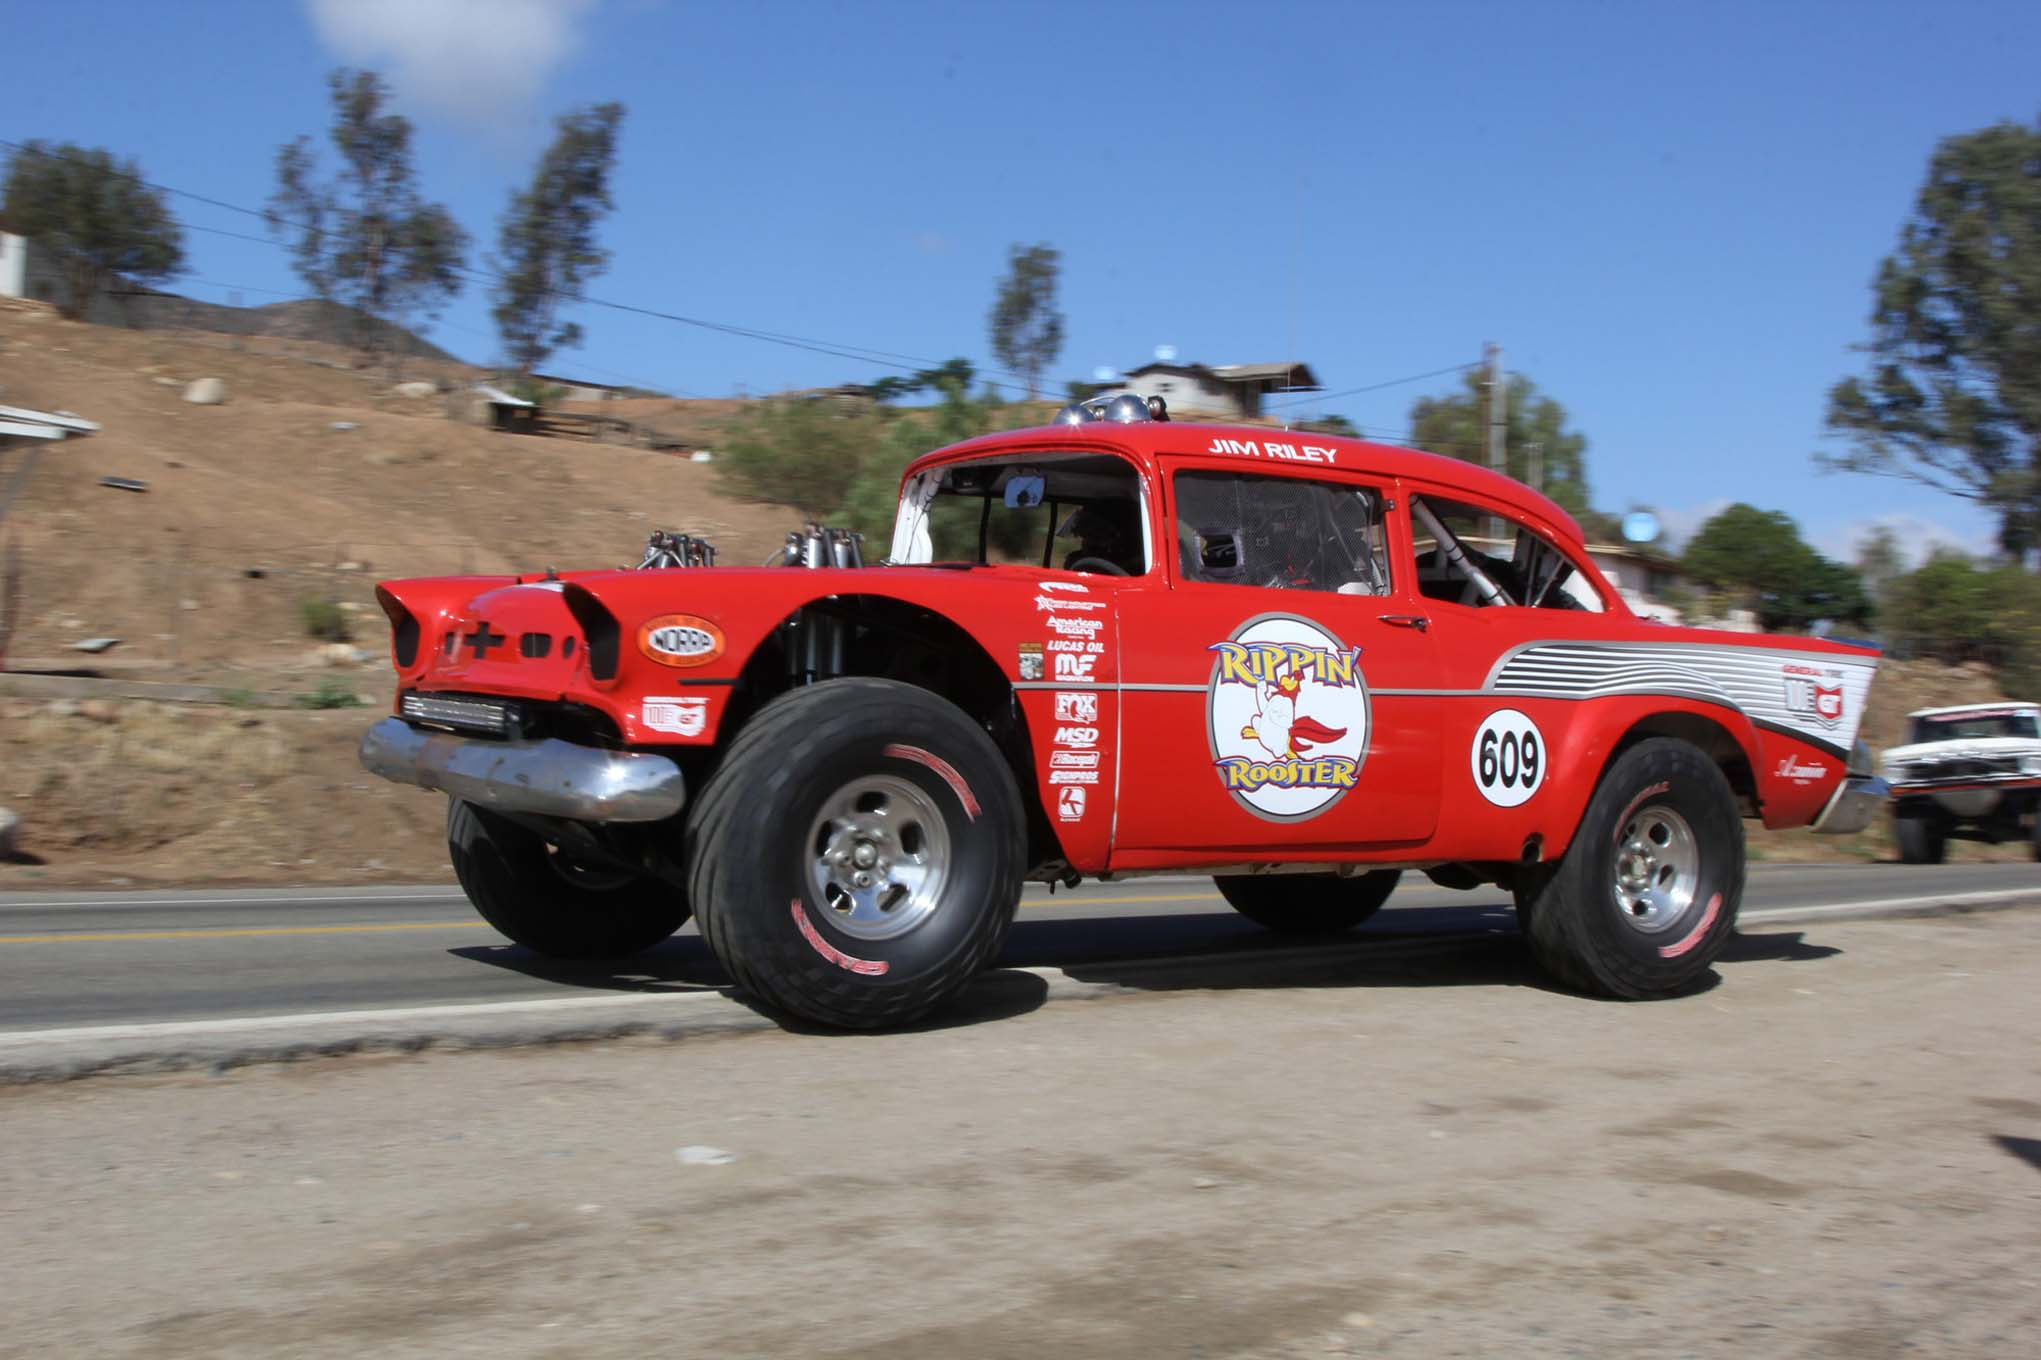 The Rippin' Rooster 1957 Chevy was originally a 1955, but off-road racing tends to go through body panels. The car was built by Larry Schwacofer in the 1980s and won multiple class championships, five in the Baja 1000. Today it races in vintage classes, with Jim Riley at the wheel.